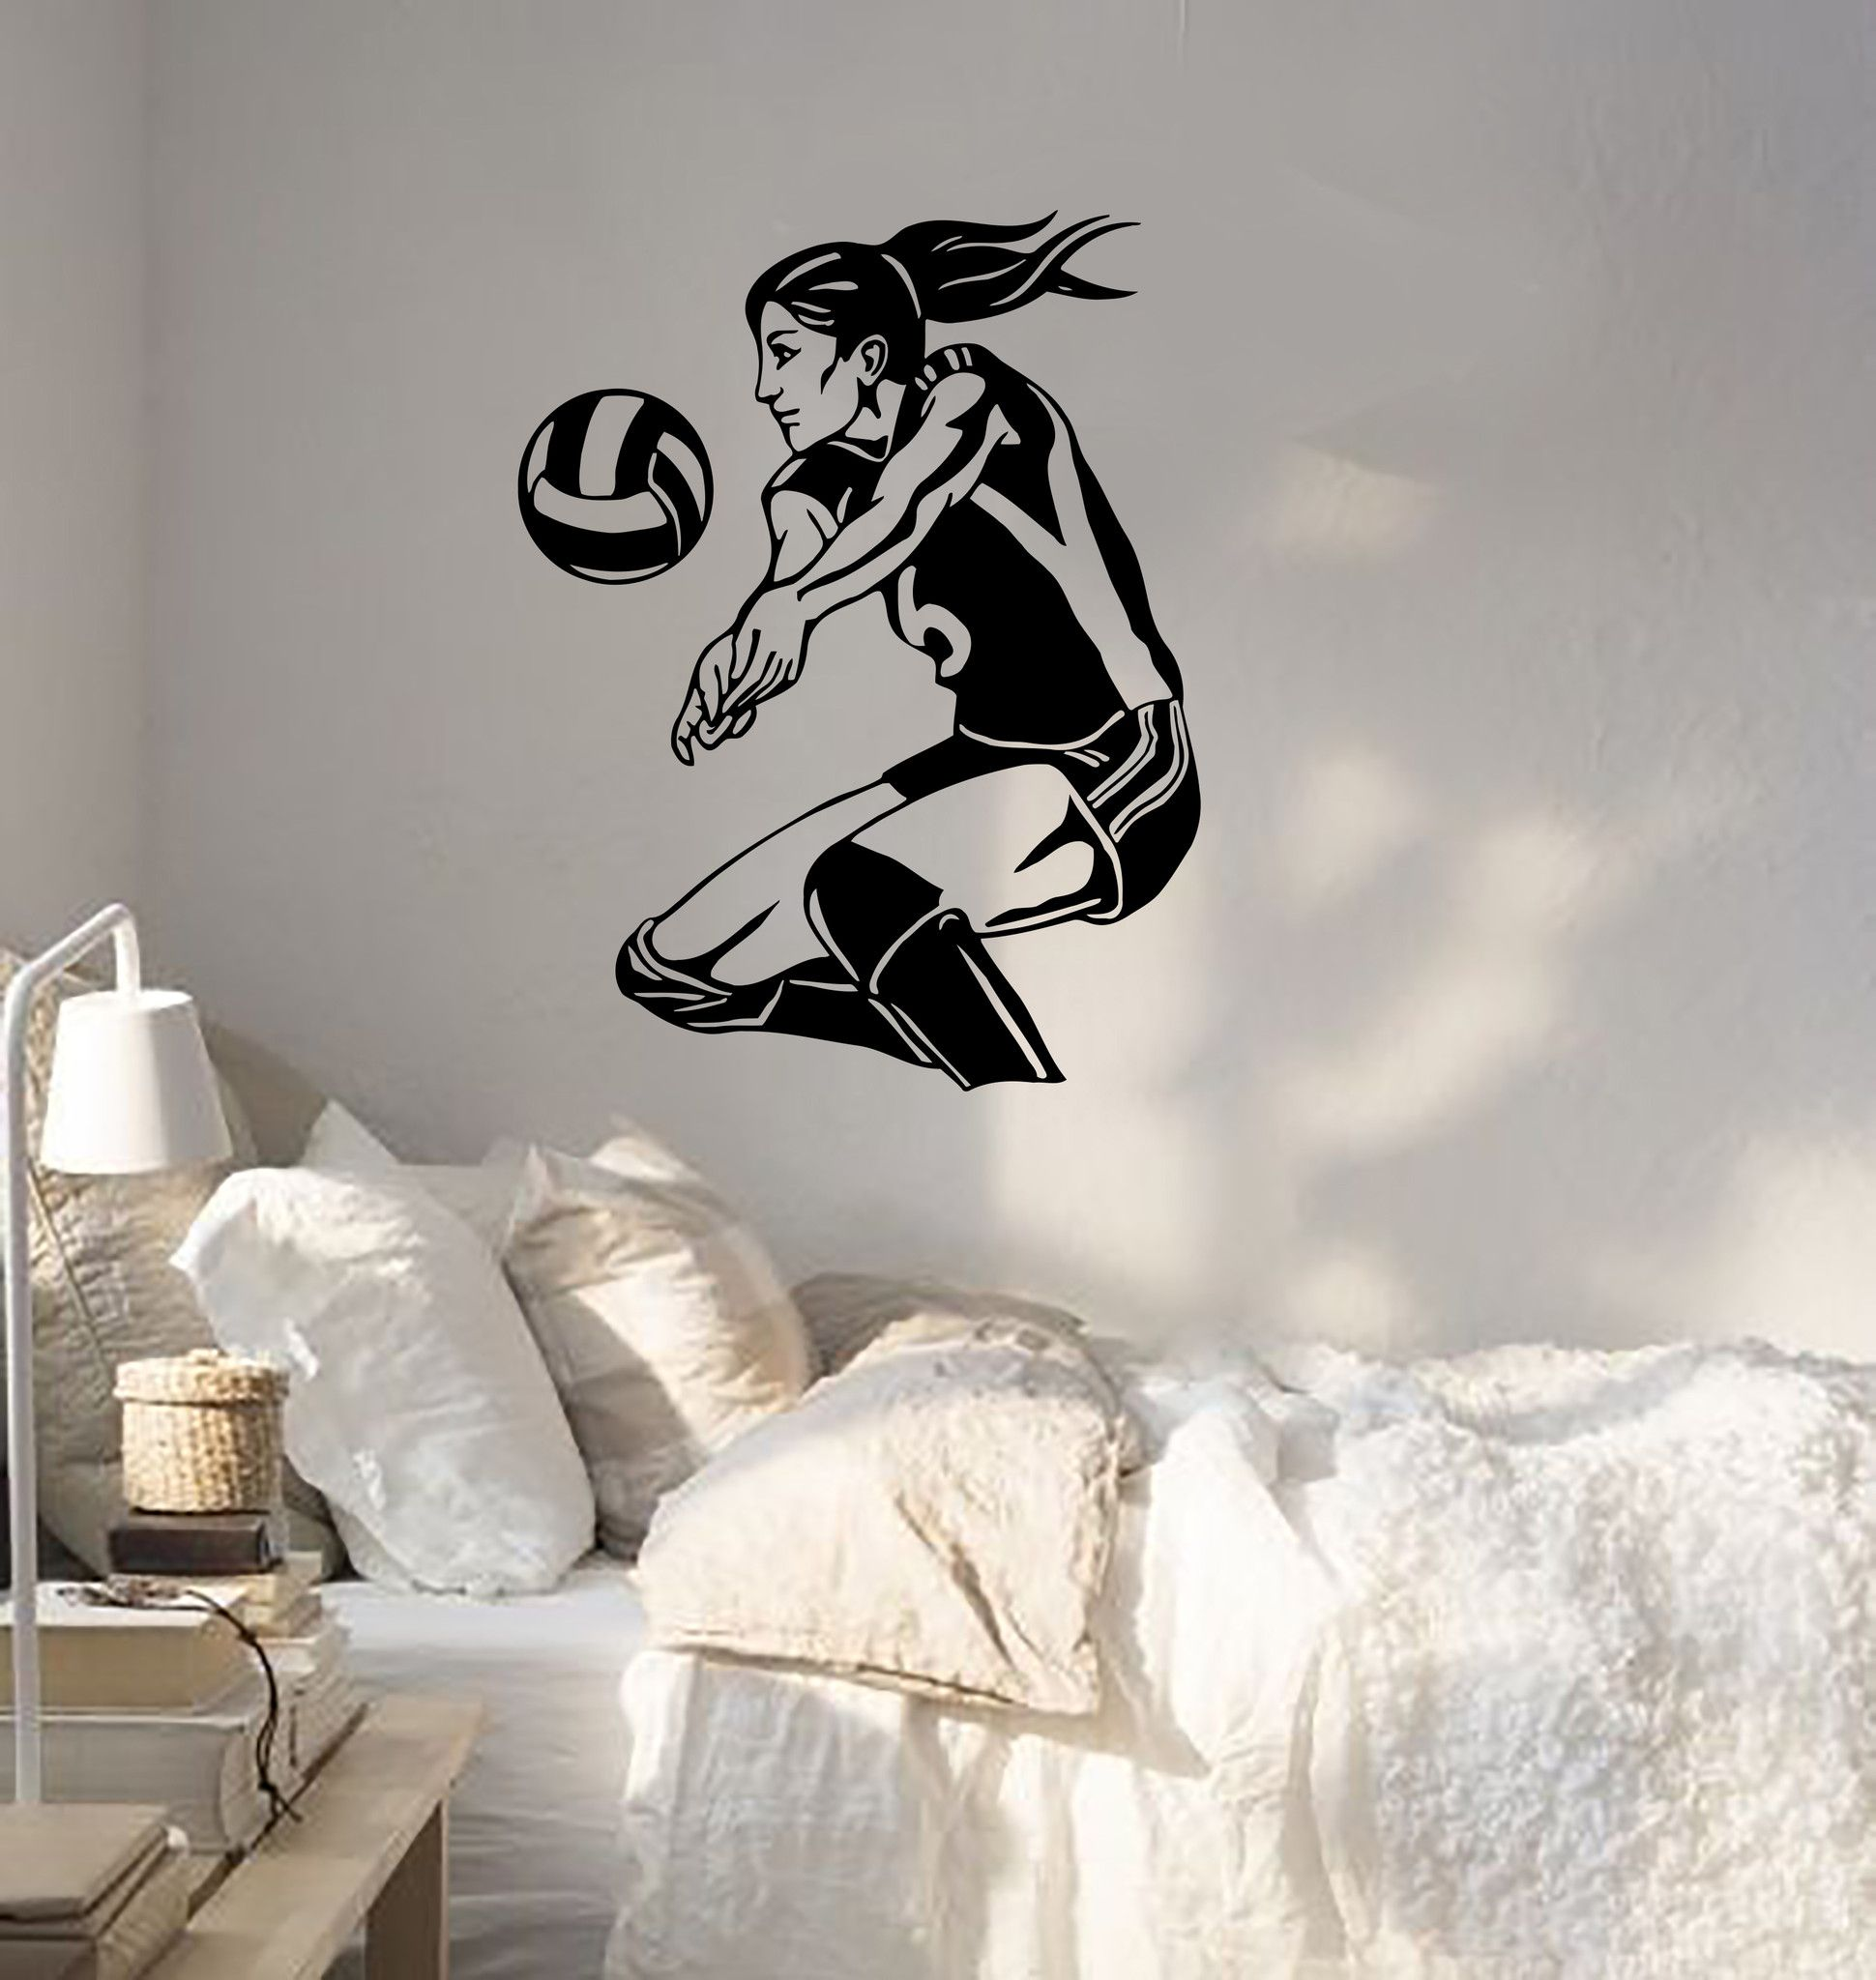 Wall Sticker Sport Volleyball Player Beach Woma Girl Female Vinyl Decal Unique Gift Z3068 Volleyball Players Sport Volleyball Volleyball